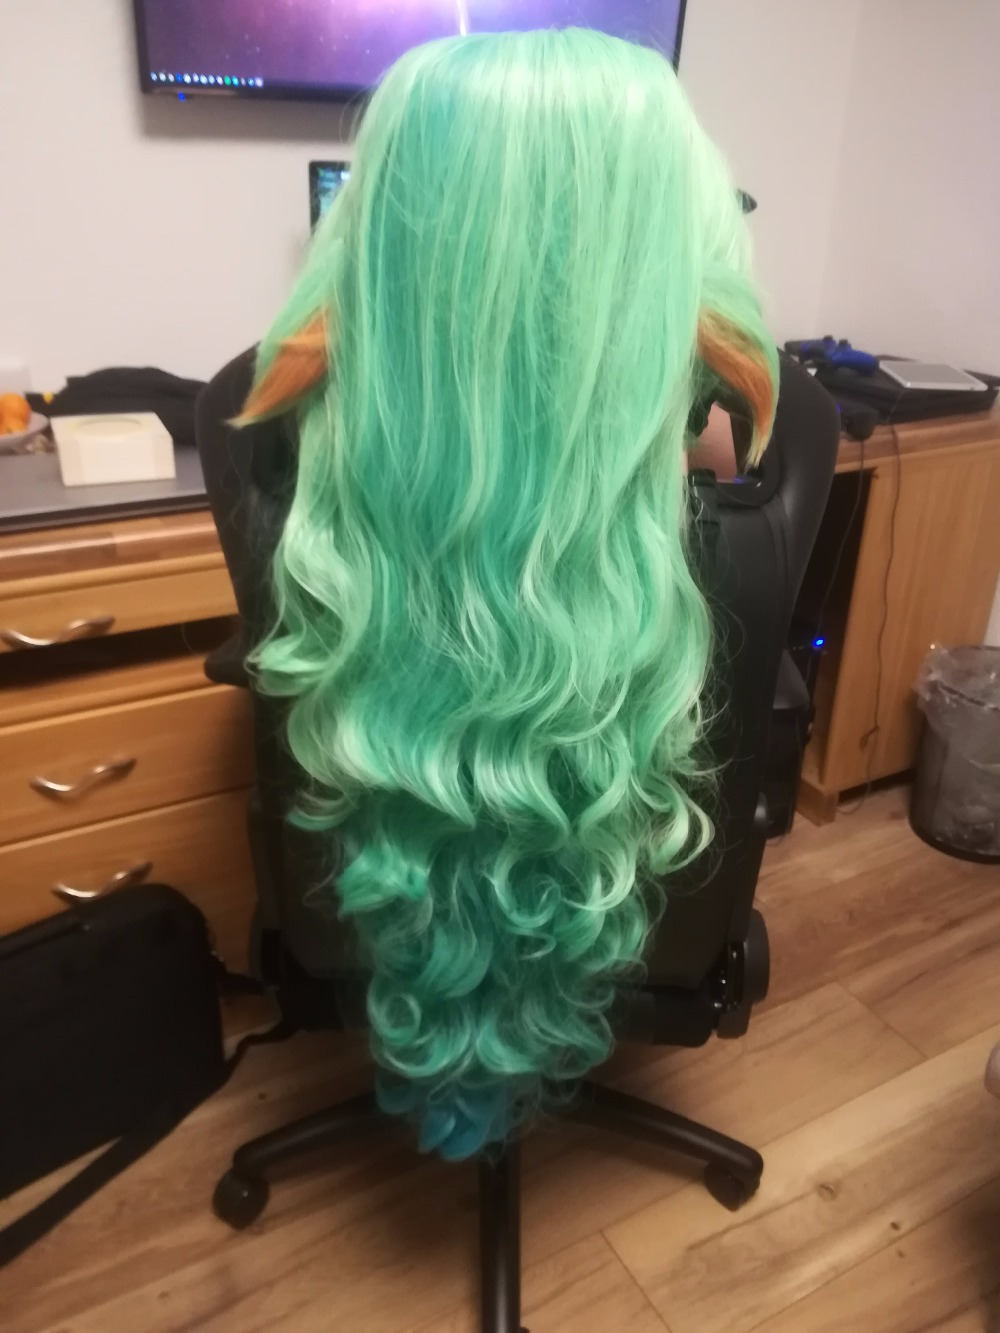 Home New Wig 100cm Lol Cosplay Soraka Wig Star Guardian Cosplay Props Long Hair Wig For Adult Women Men Masquerade Party